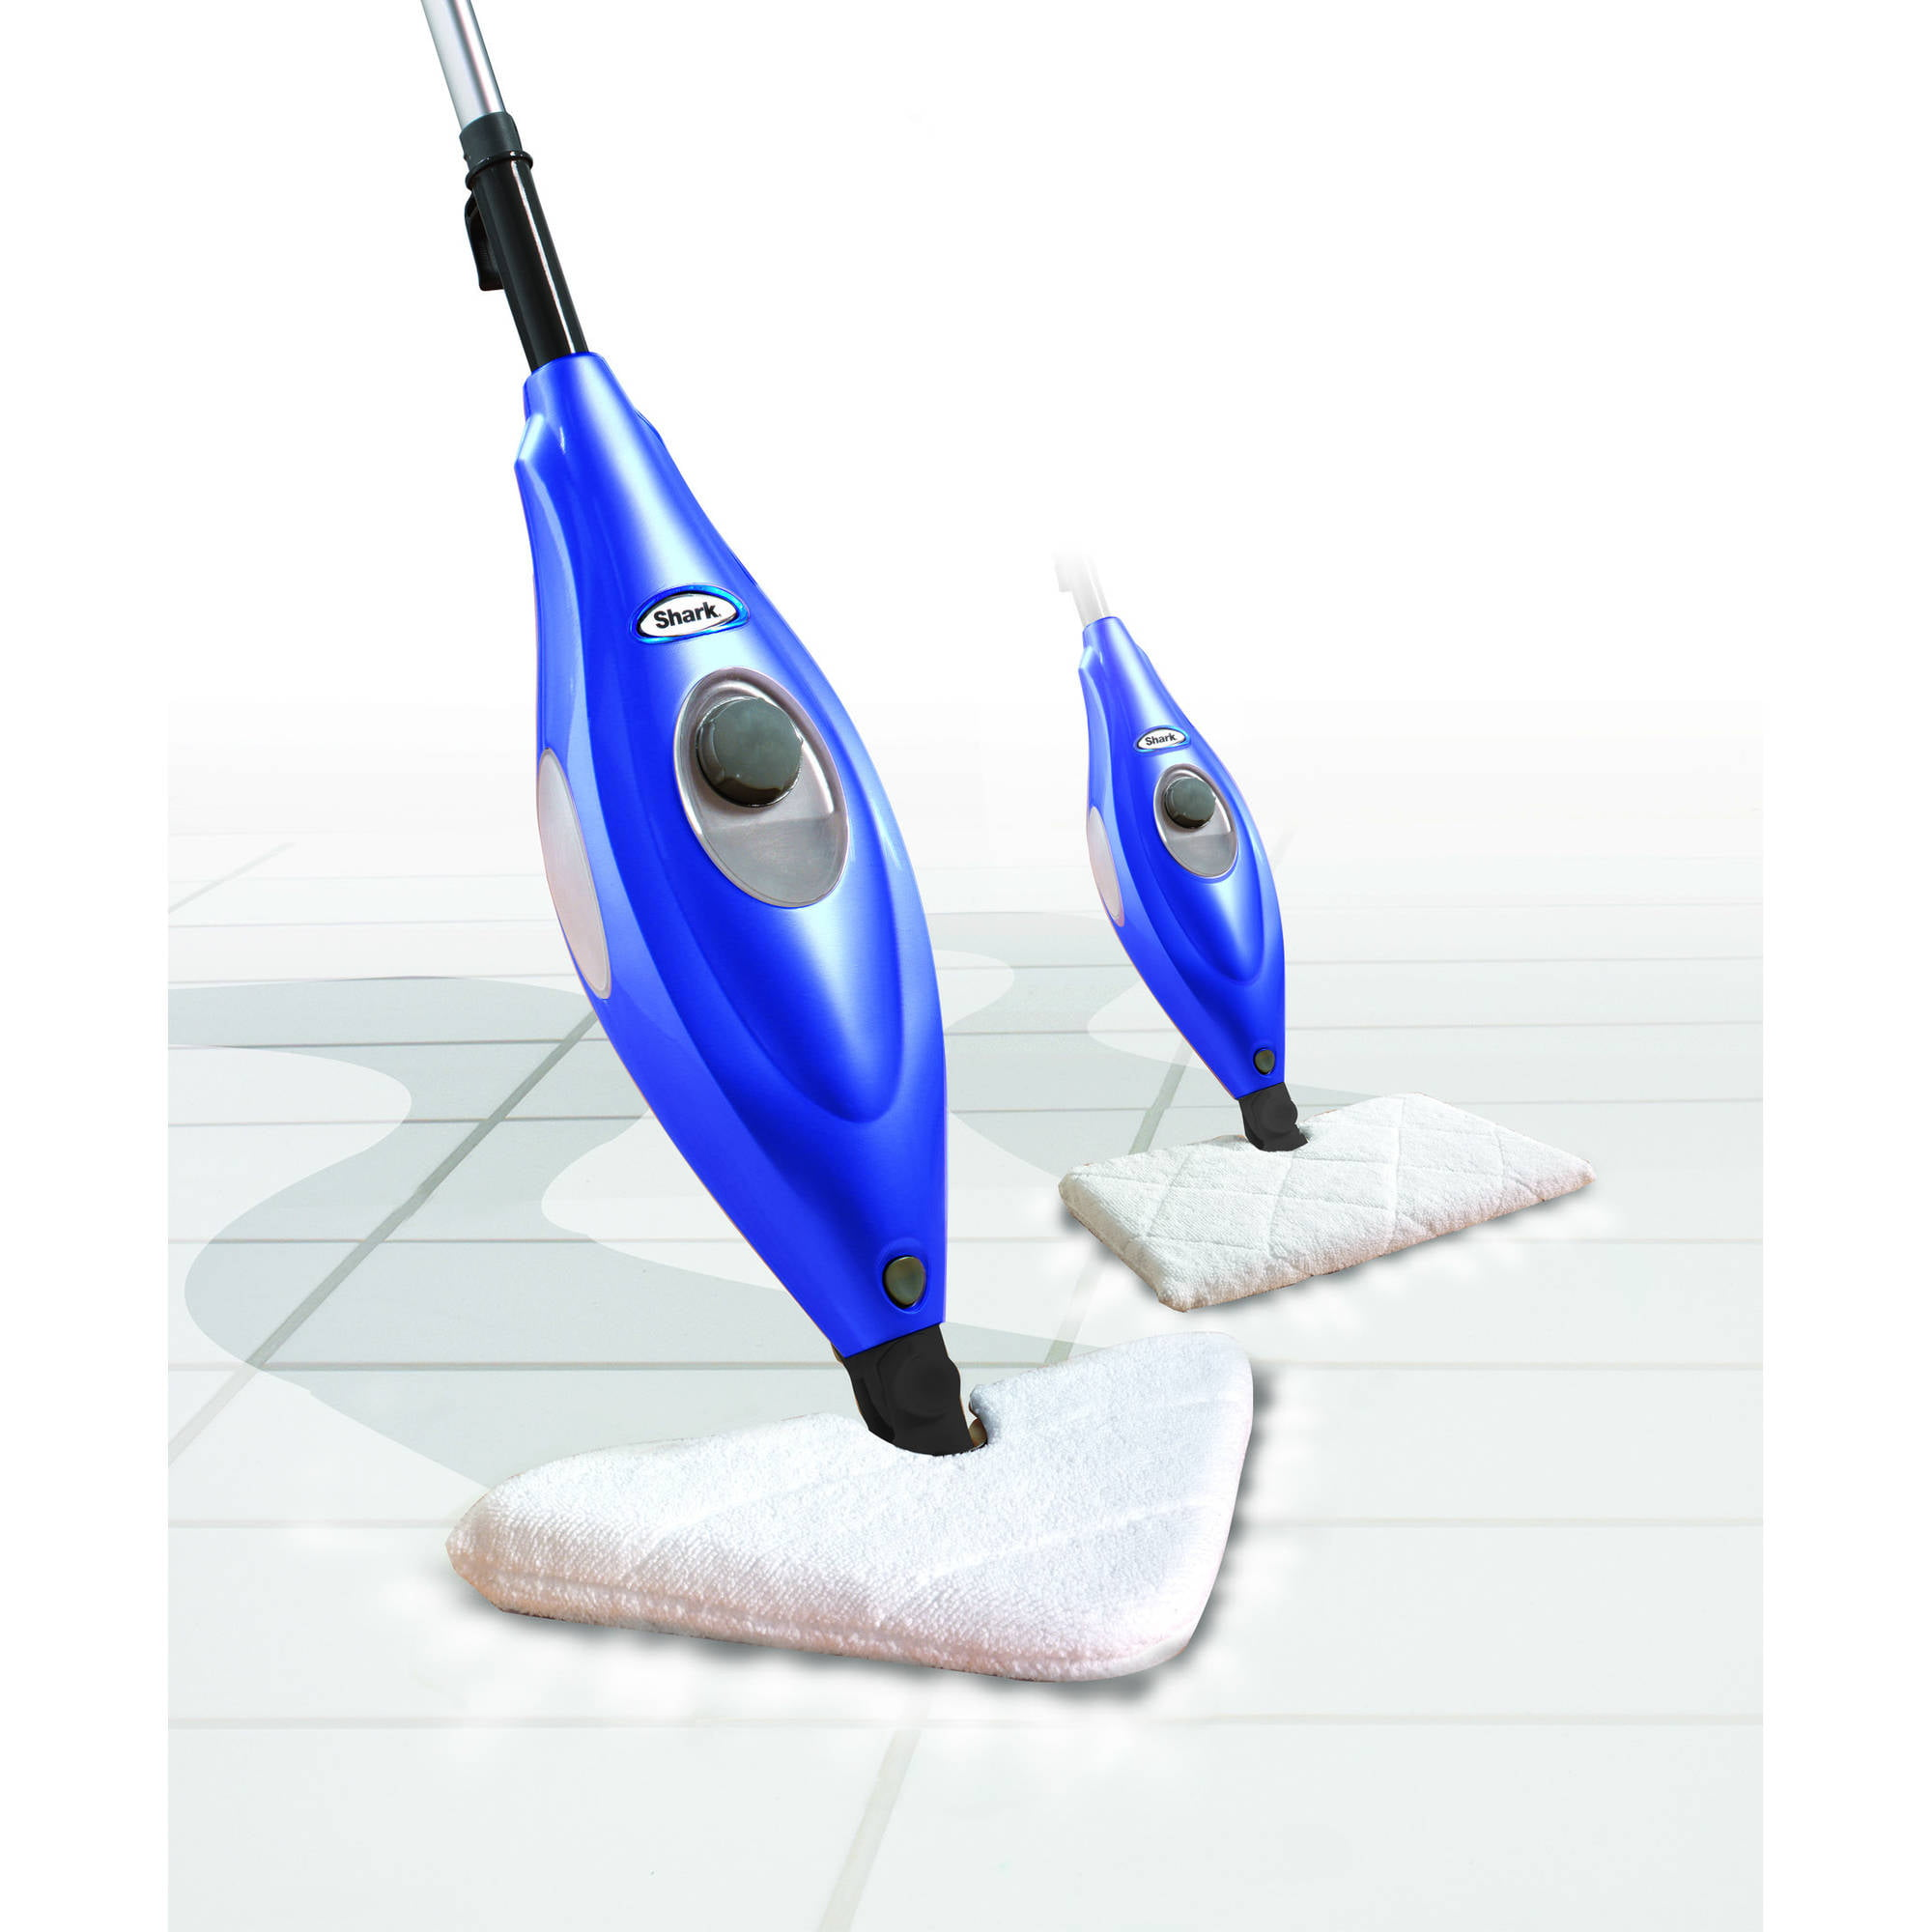 Shark Deluxe Steam Pocket Mop S3501WM Walmart